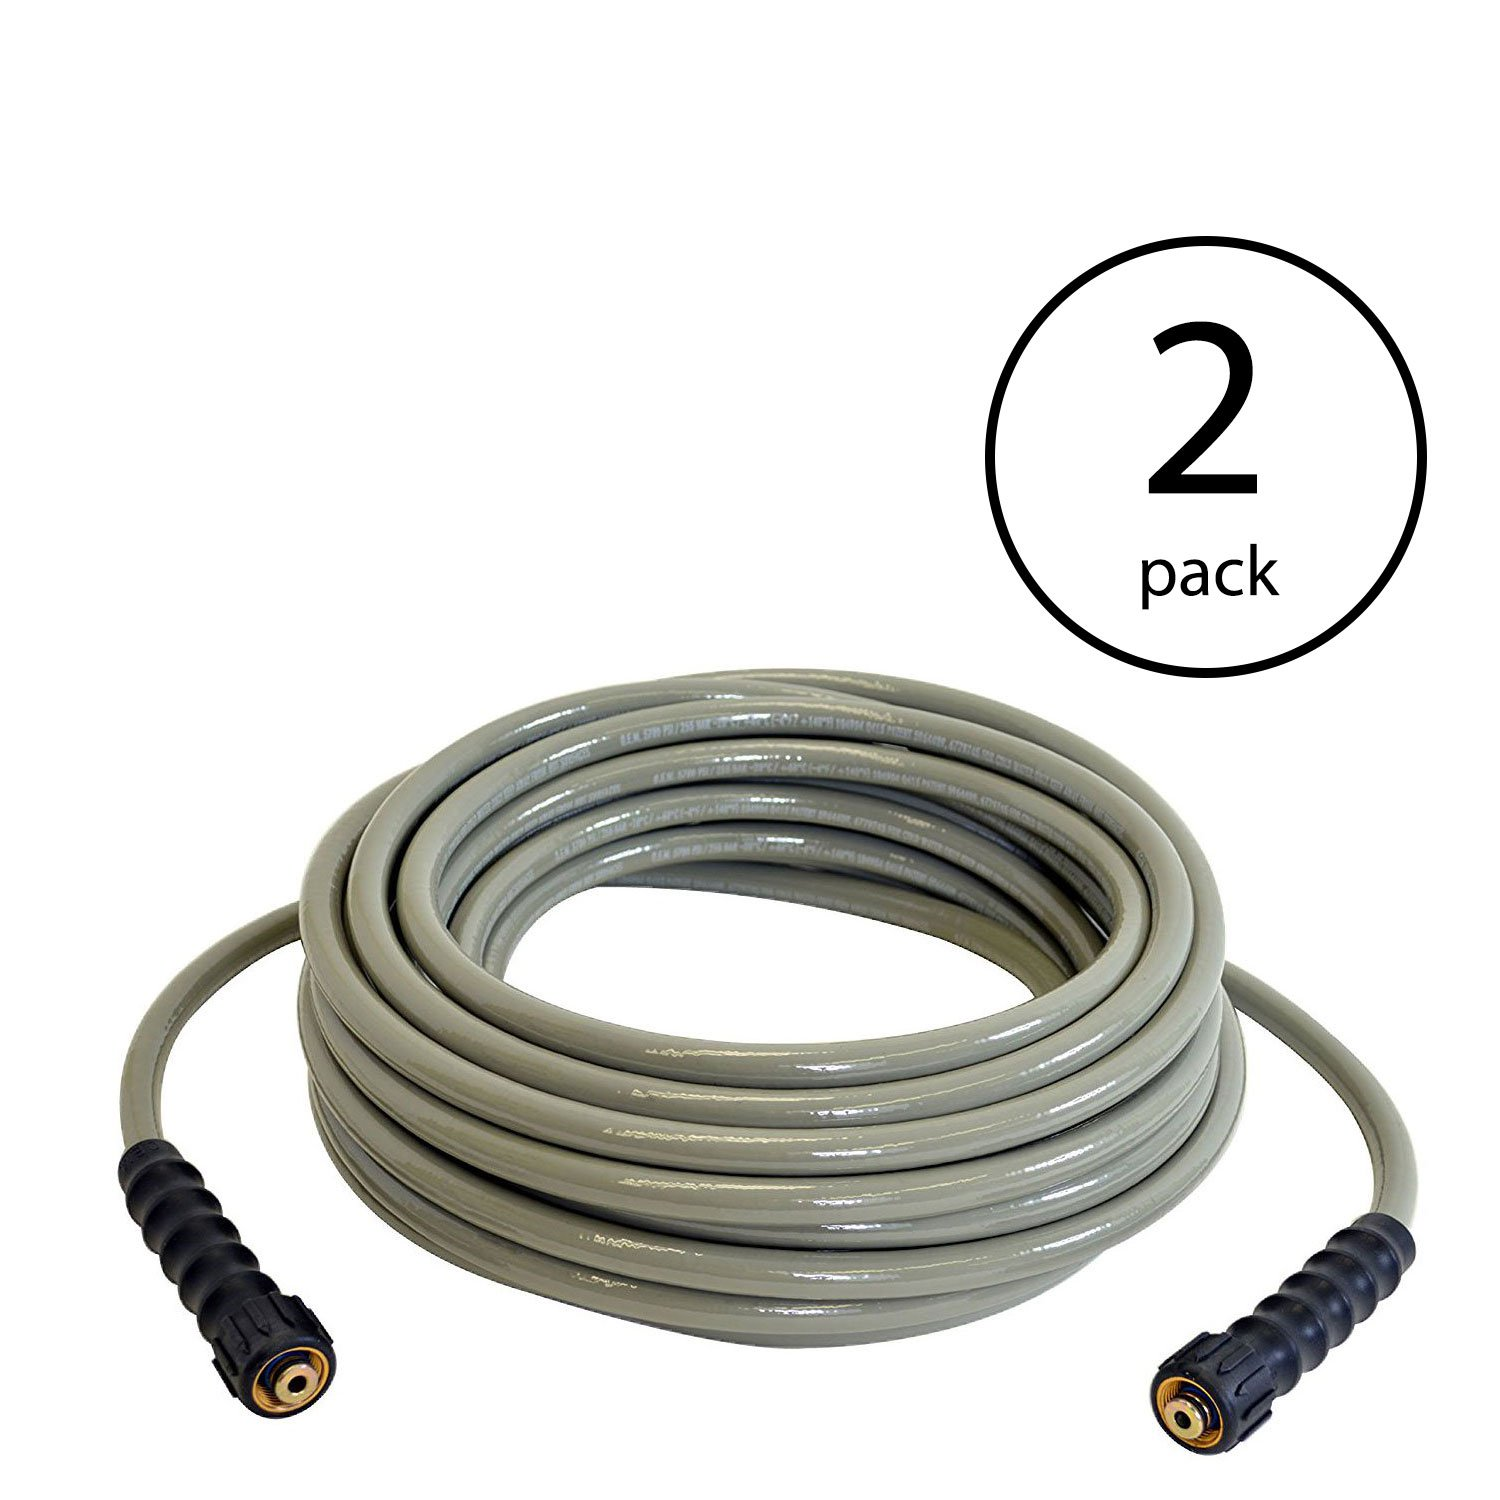 Simpson Cleaning MorFlex 3700 PSI 50 Foot Home Pressure Washer Hose (2 Pack)